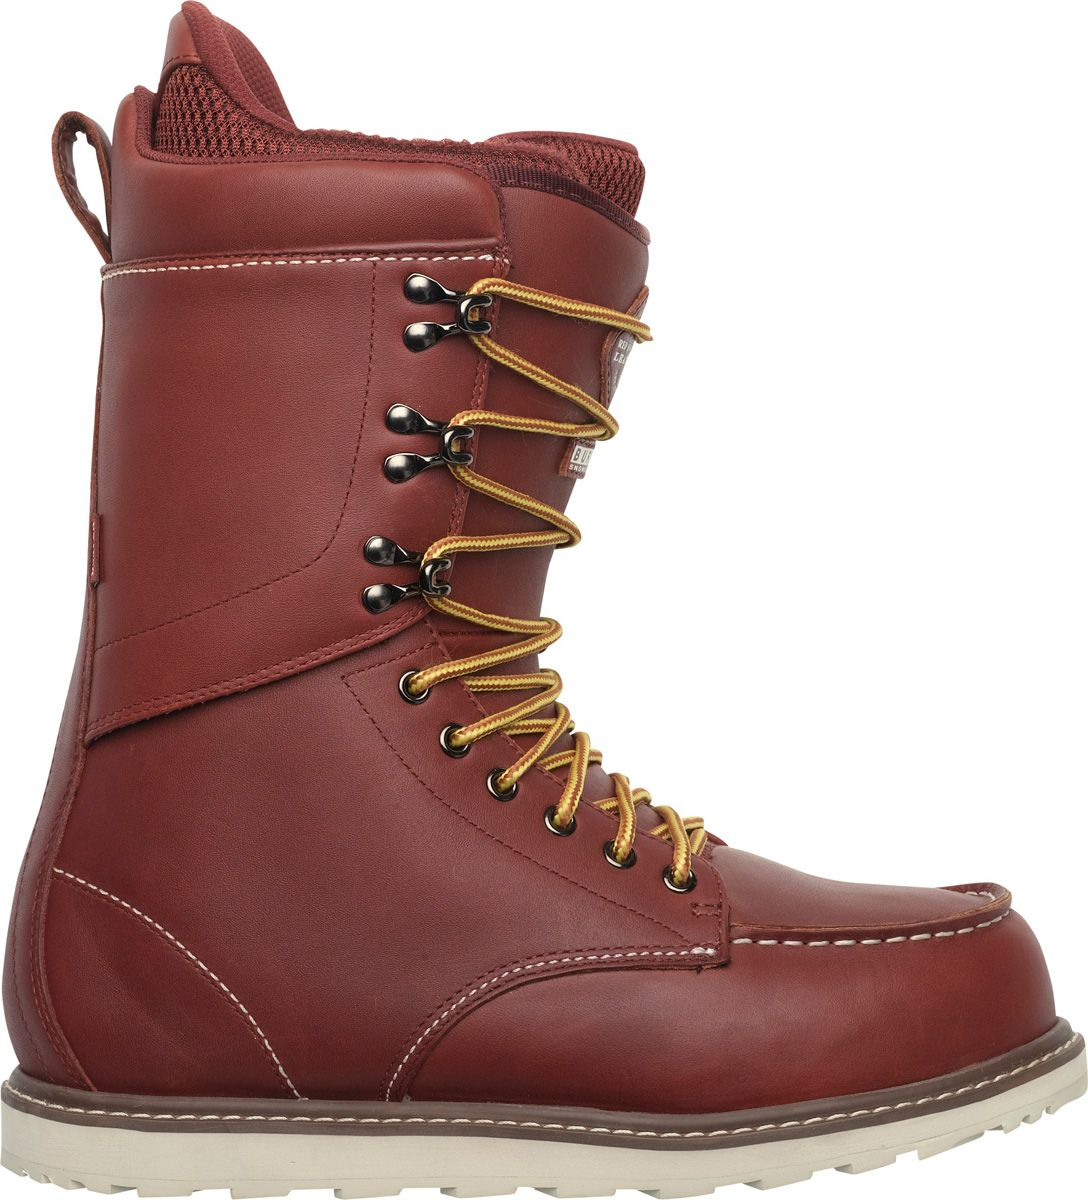 GEAR: Red Wing Shoes X Burton Snowboards Rover Boots